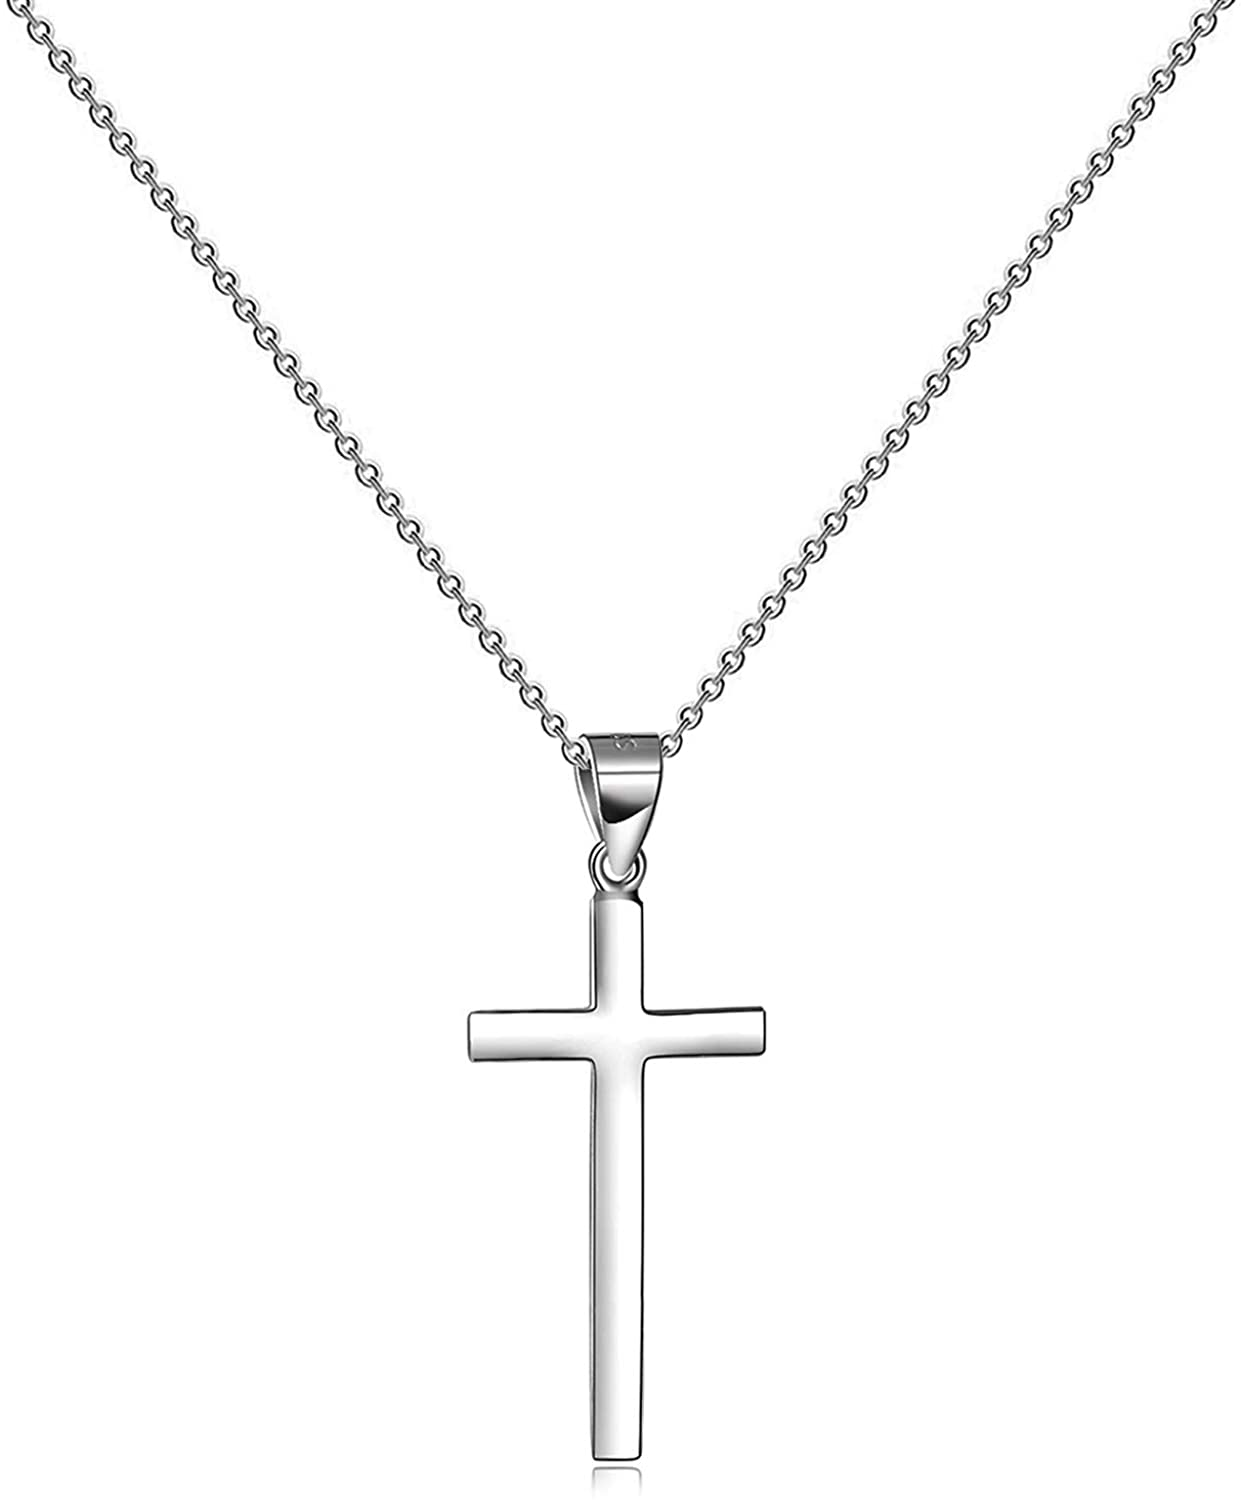 Tiny Cross Pendant Necklace for Women Simple Cross Necklaces